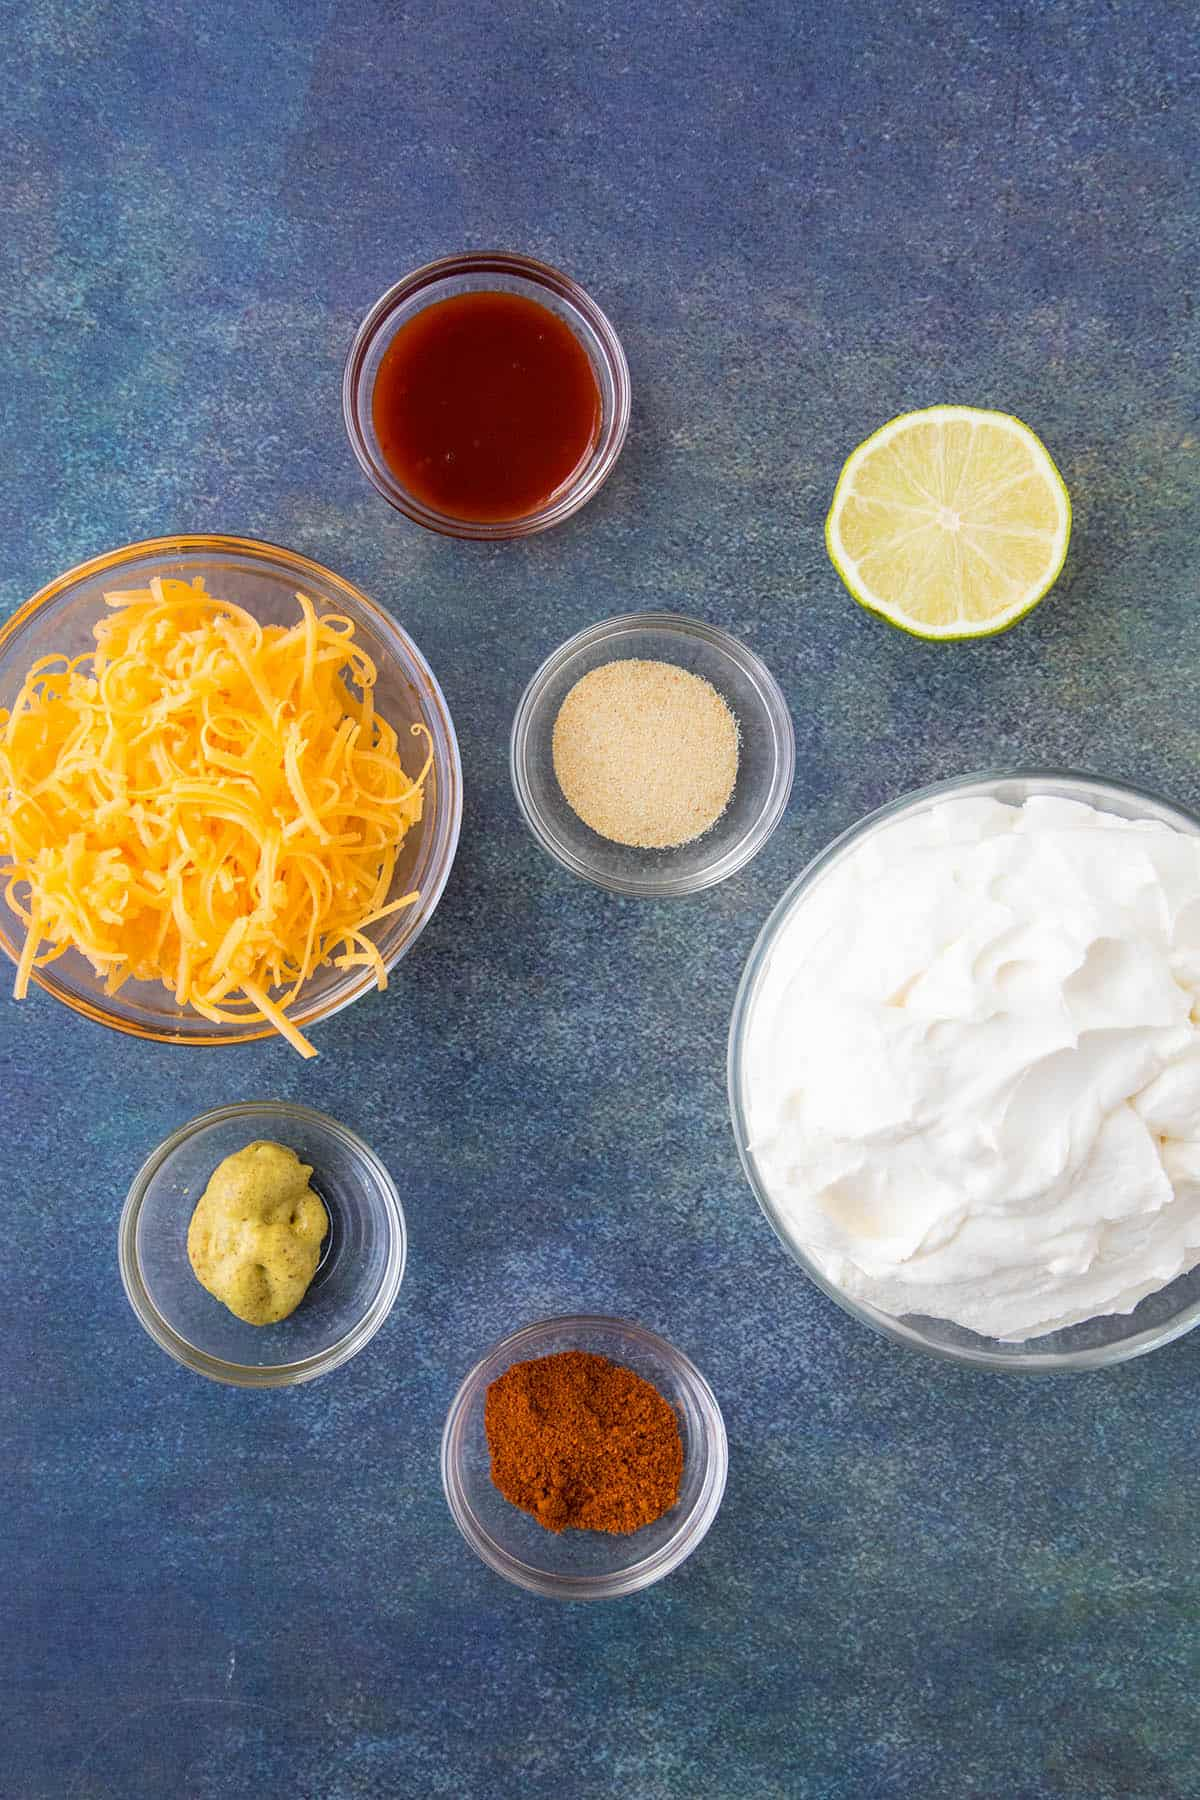 Sour Cream Dip Ingredients